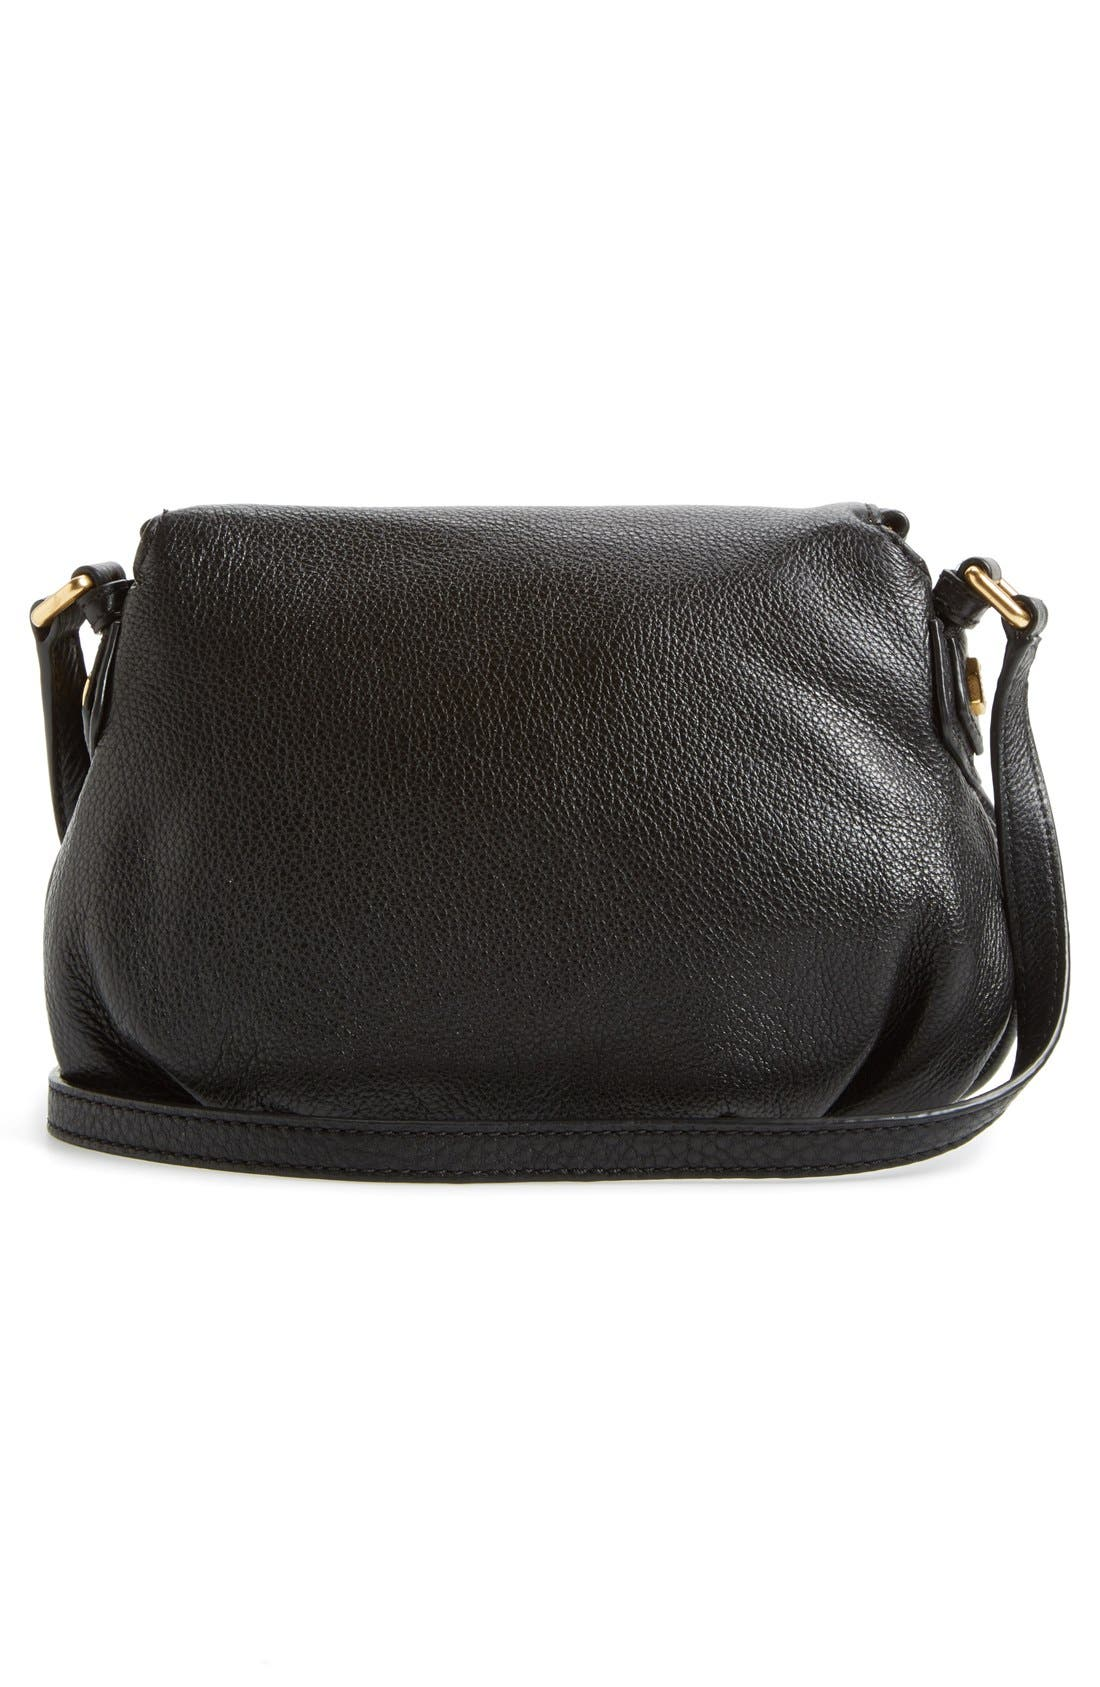 MARC JACOBS, MARC BY MARC JACOBS 'Classic Q Natasha - Mini' Crossbody Flap Bag, Alternate thumbnail 6, color, 001